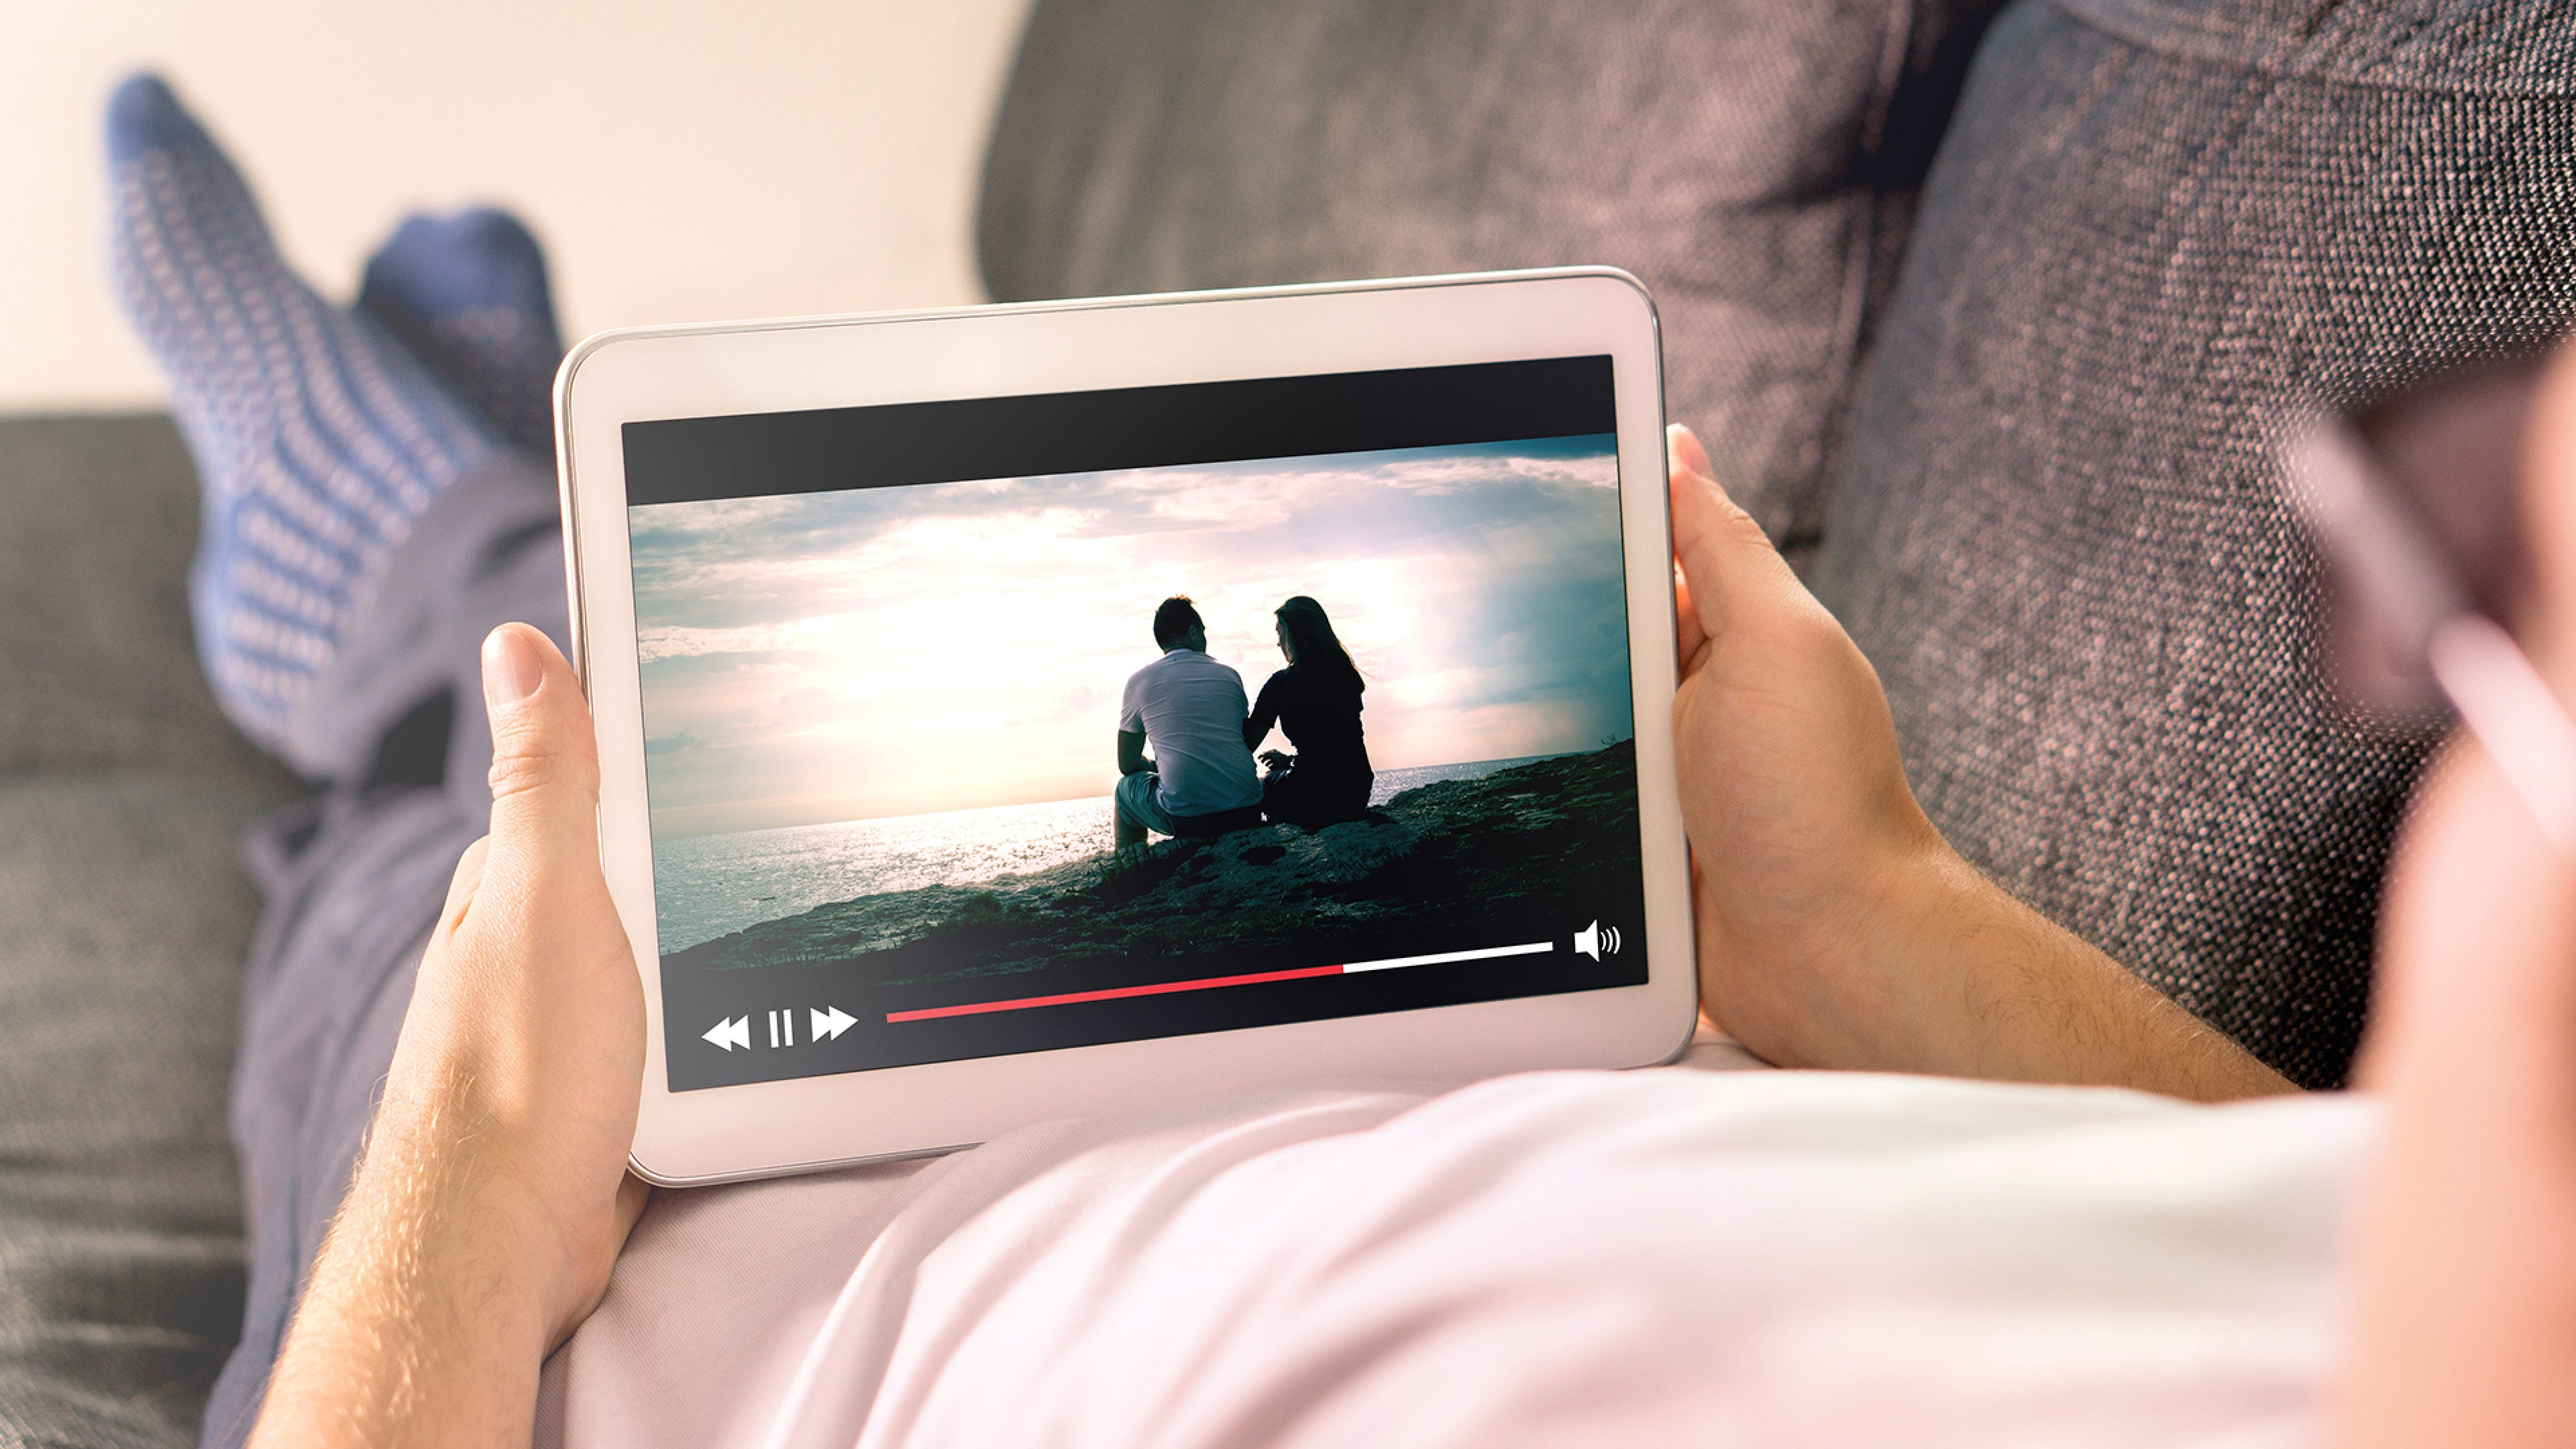 5 Ways to Watch Video With Your Long-Distance Friends